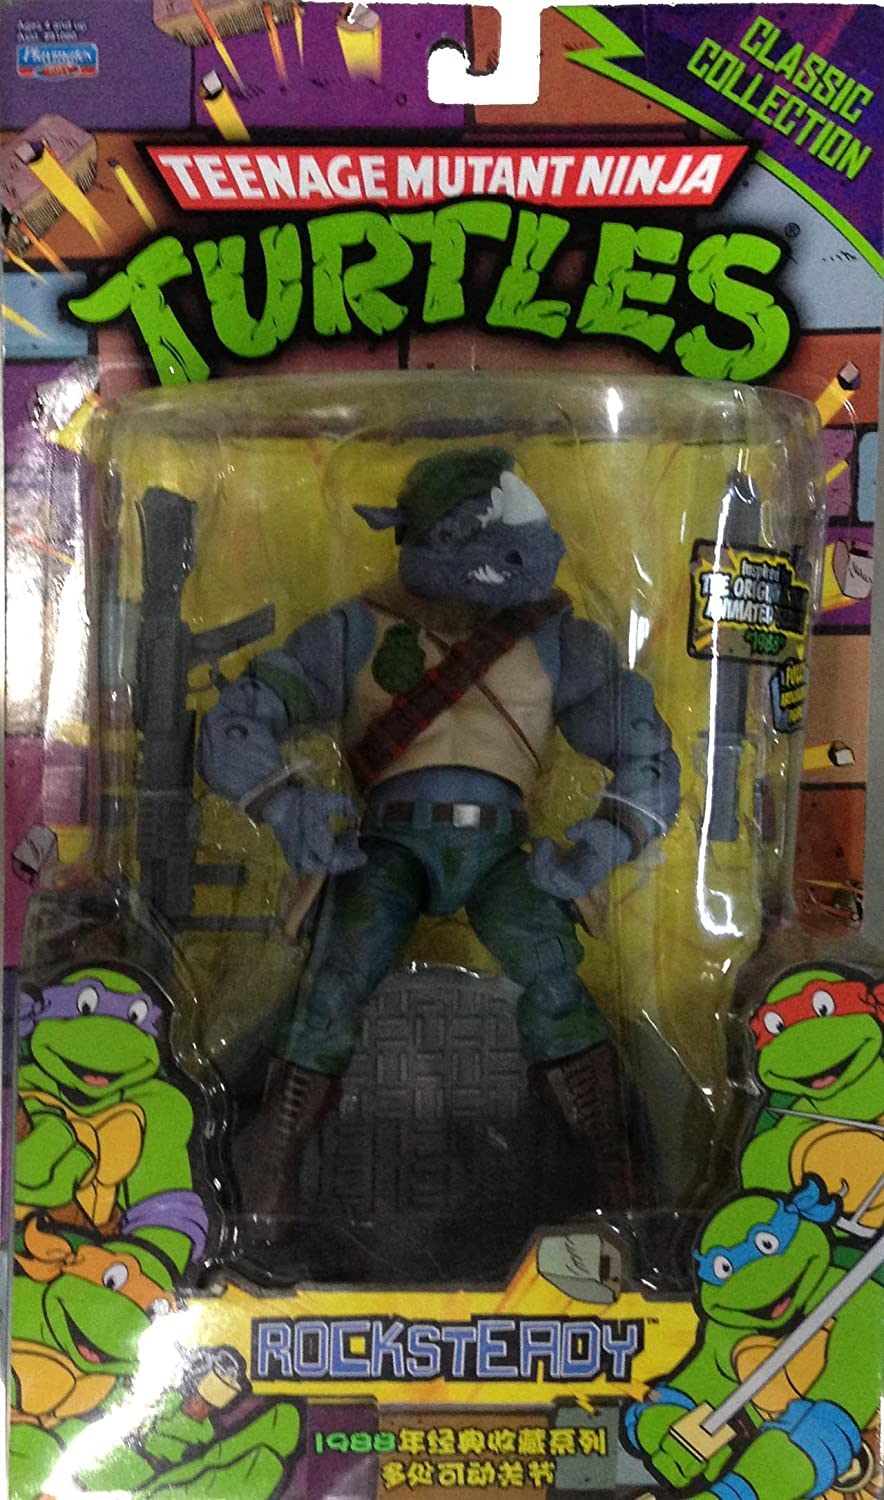 Teenage Mutant Ninja Turtles Rocksteady Classic Collection ...